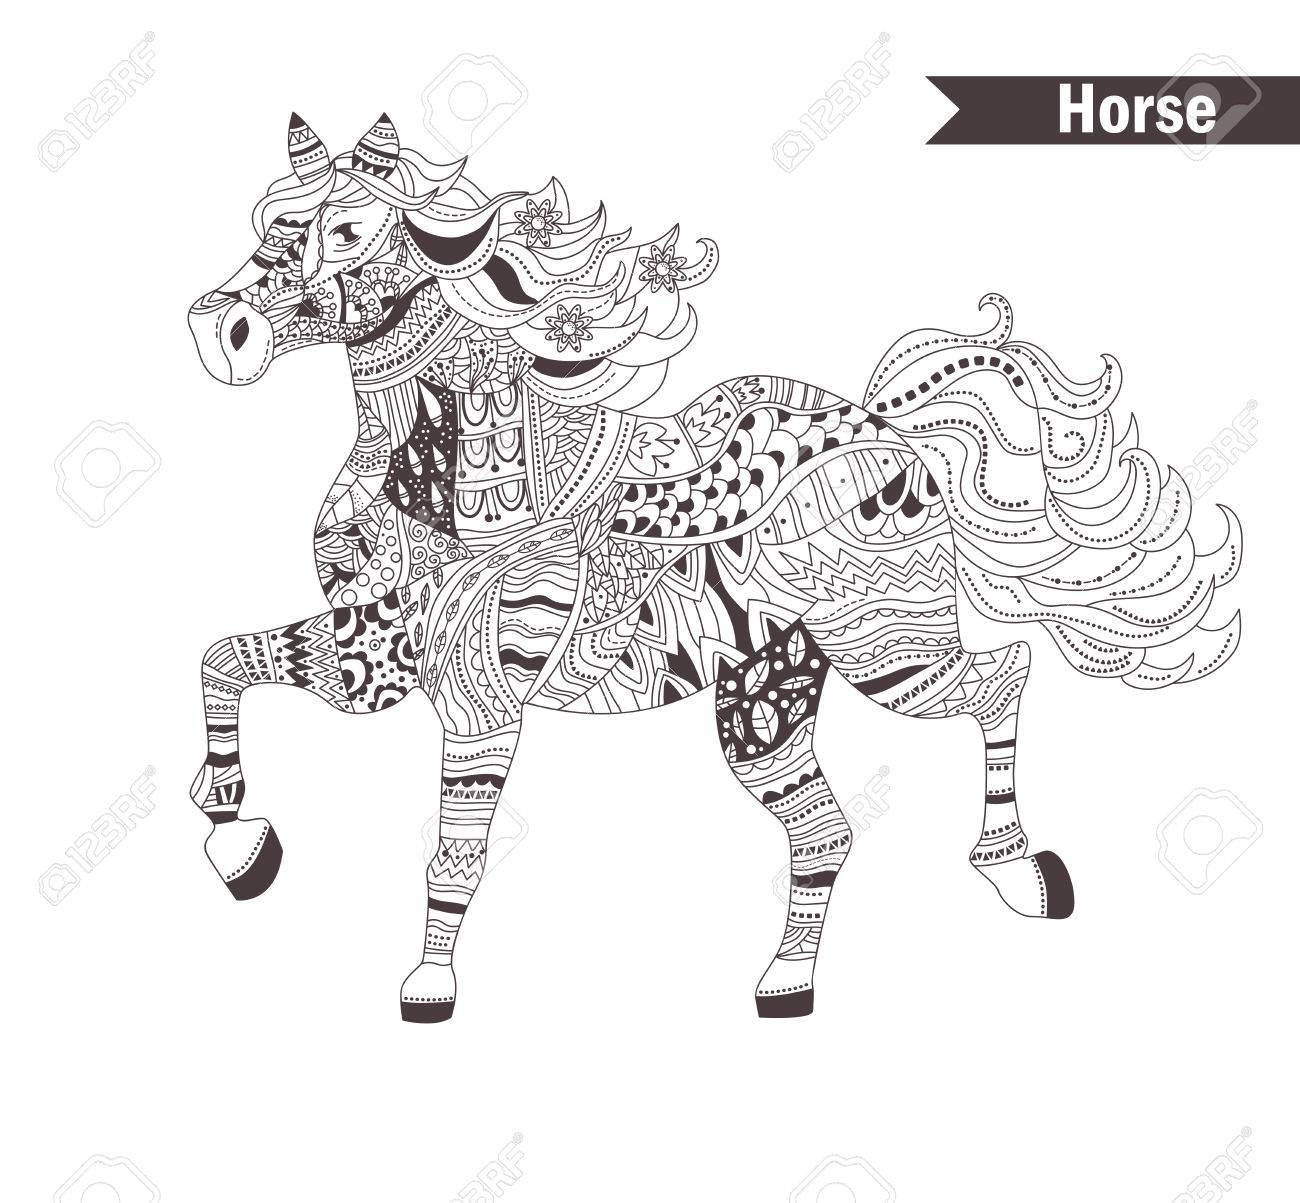 Impressionnant Coloriage Anti Stress Cheval 56 Avec supplémentaire Coloriage Pages for Coloriage Anti Stress Cheval